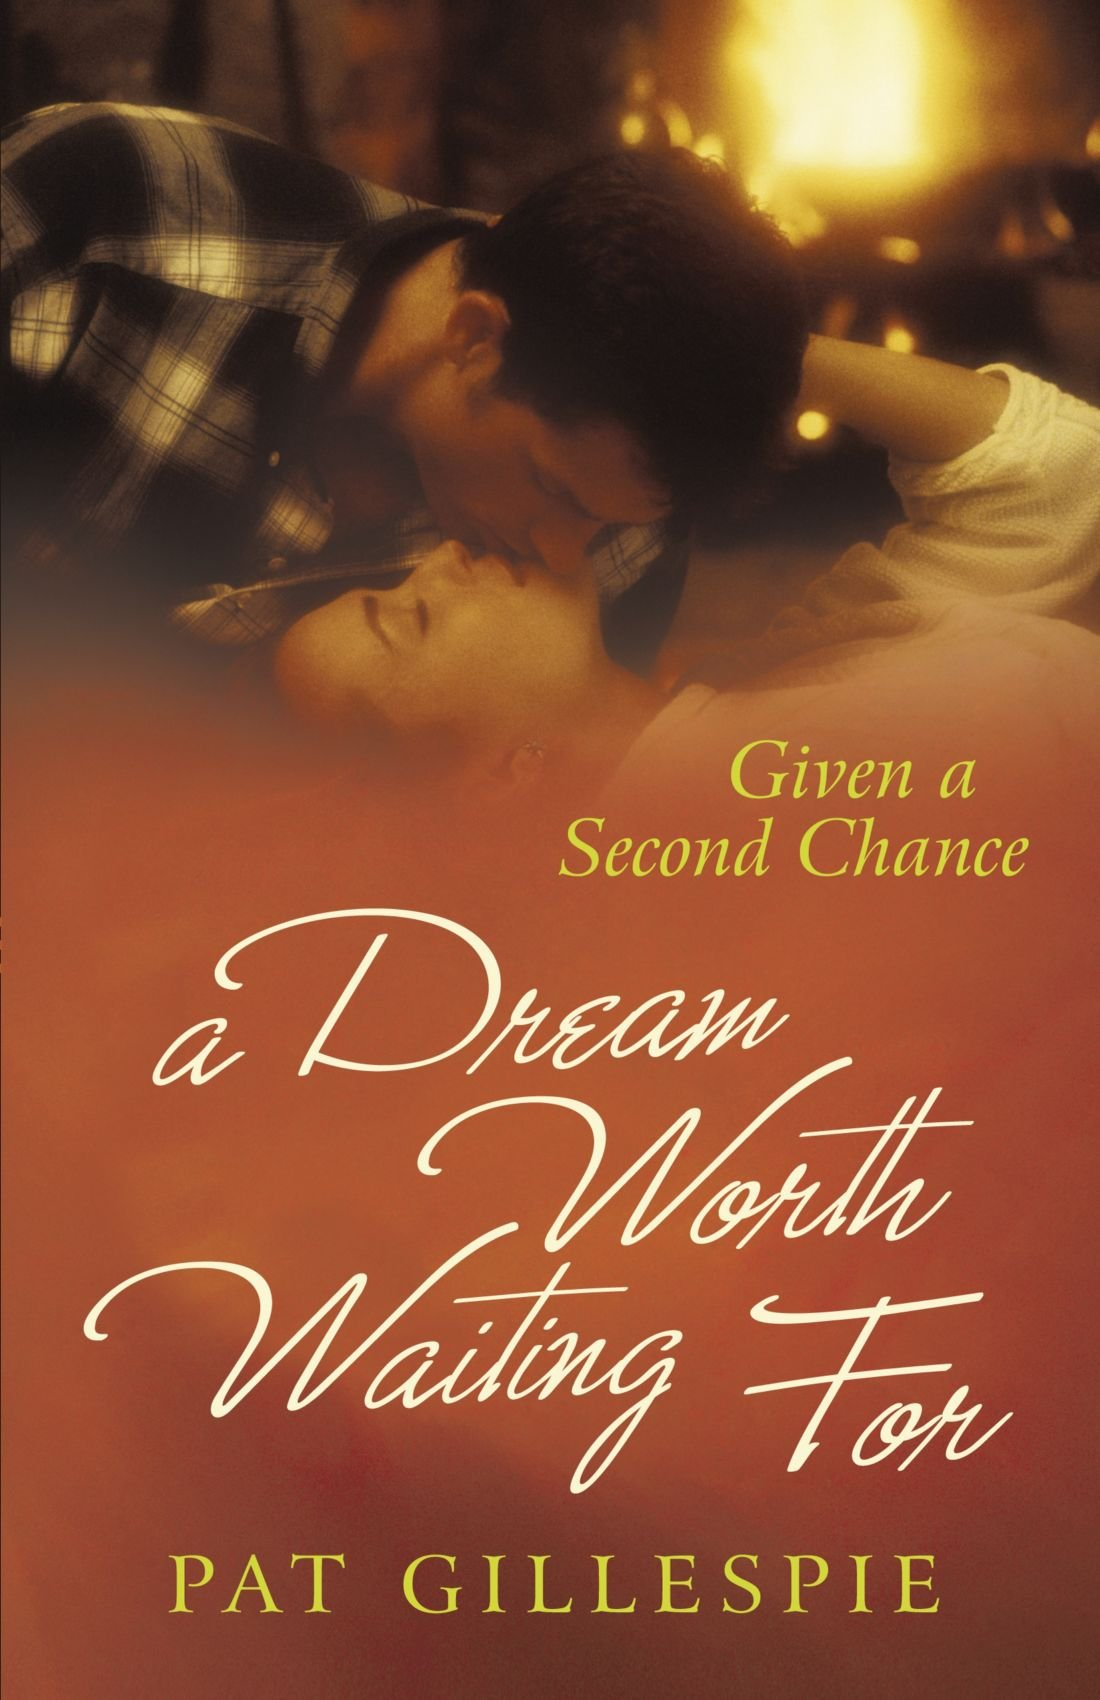 Download Given A Second Chance: A Dream Worth Waiting For pdf epub